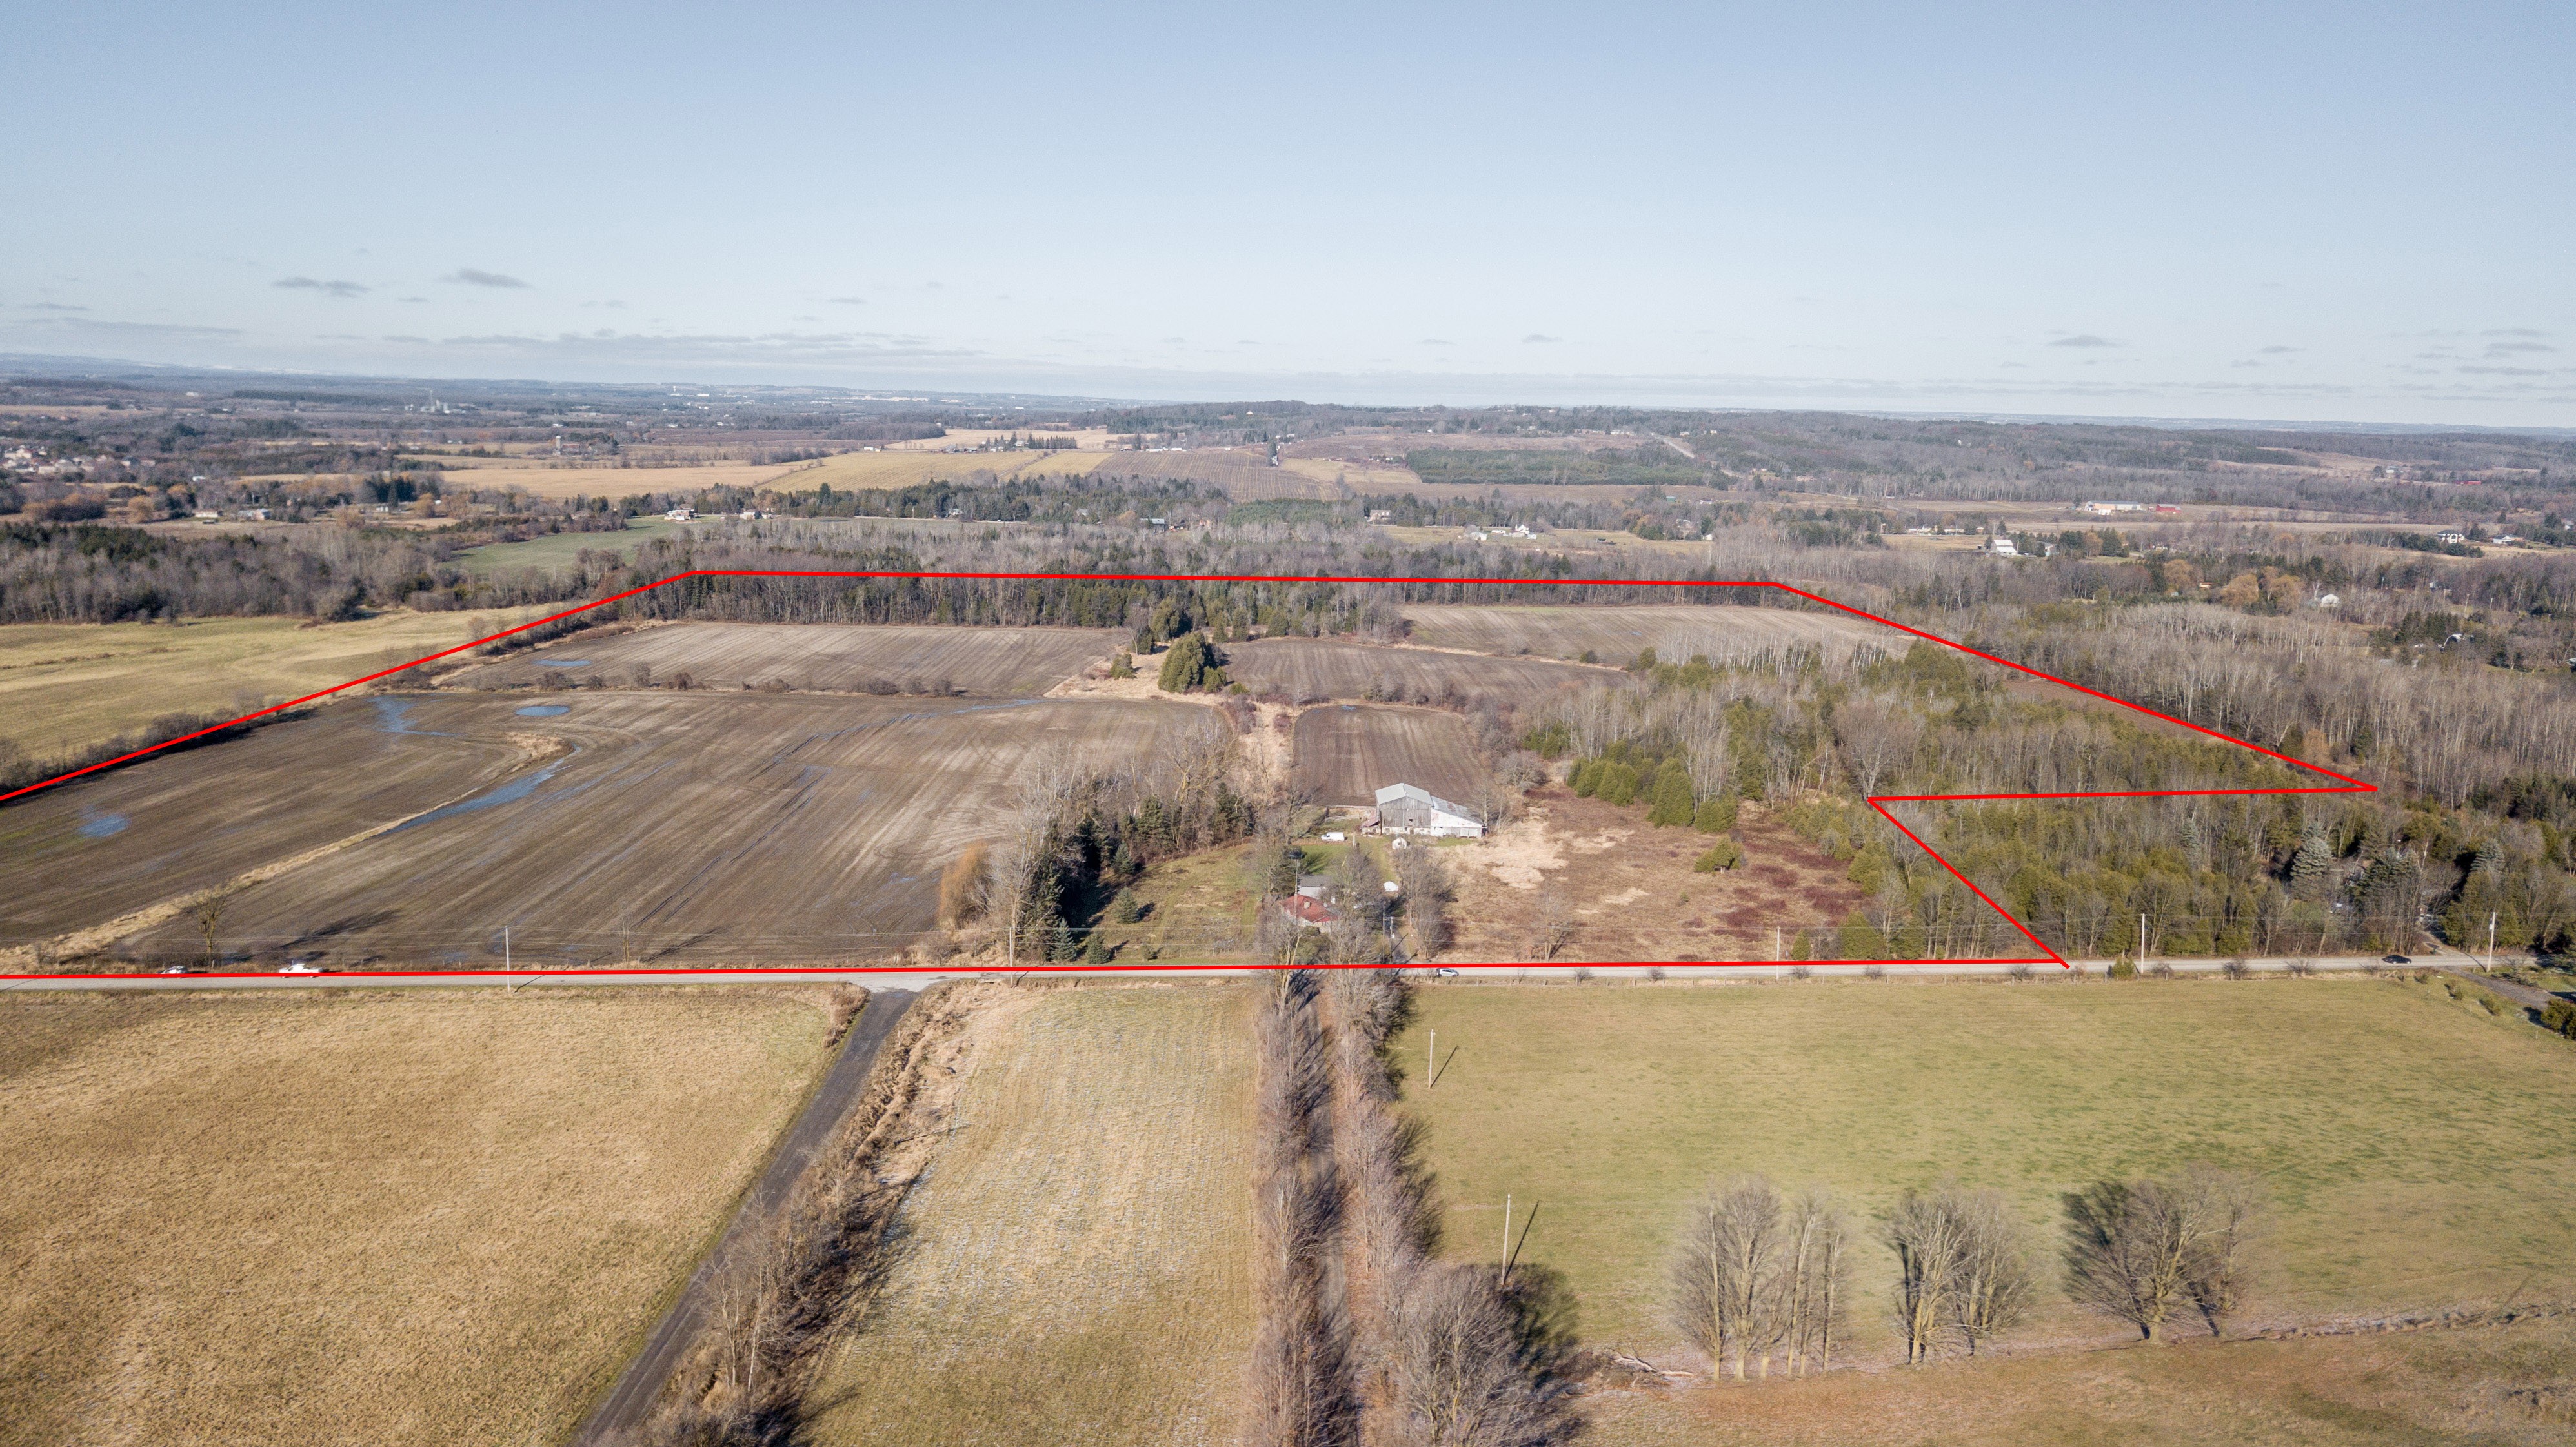 Tottenham South 105 Ac Workable Land, House, Barn, $3,500,000.